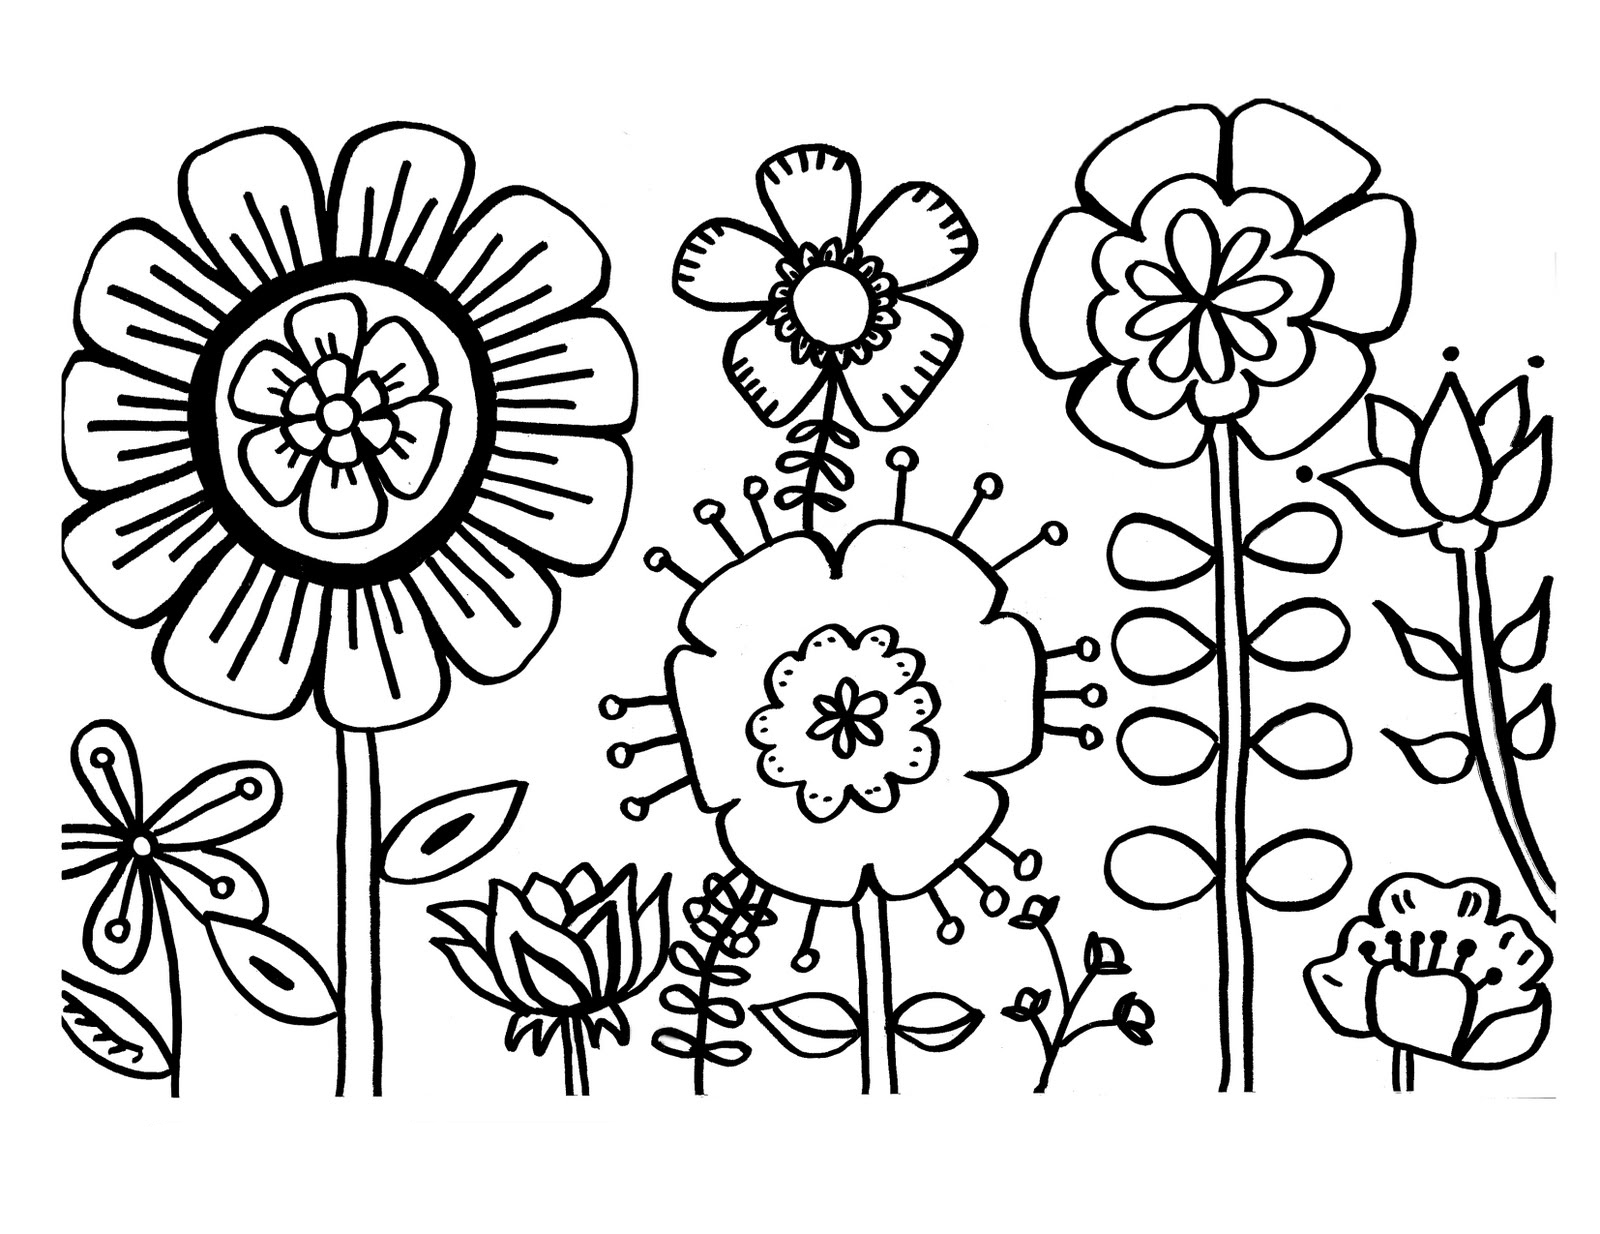 flower coloring sheets free free printable flower coloring pages for kids cool2bkids free coloring sheets flower